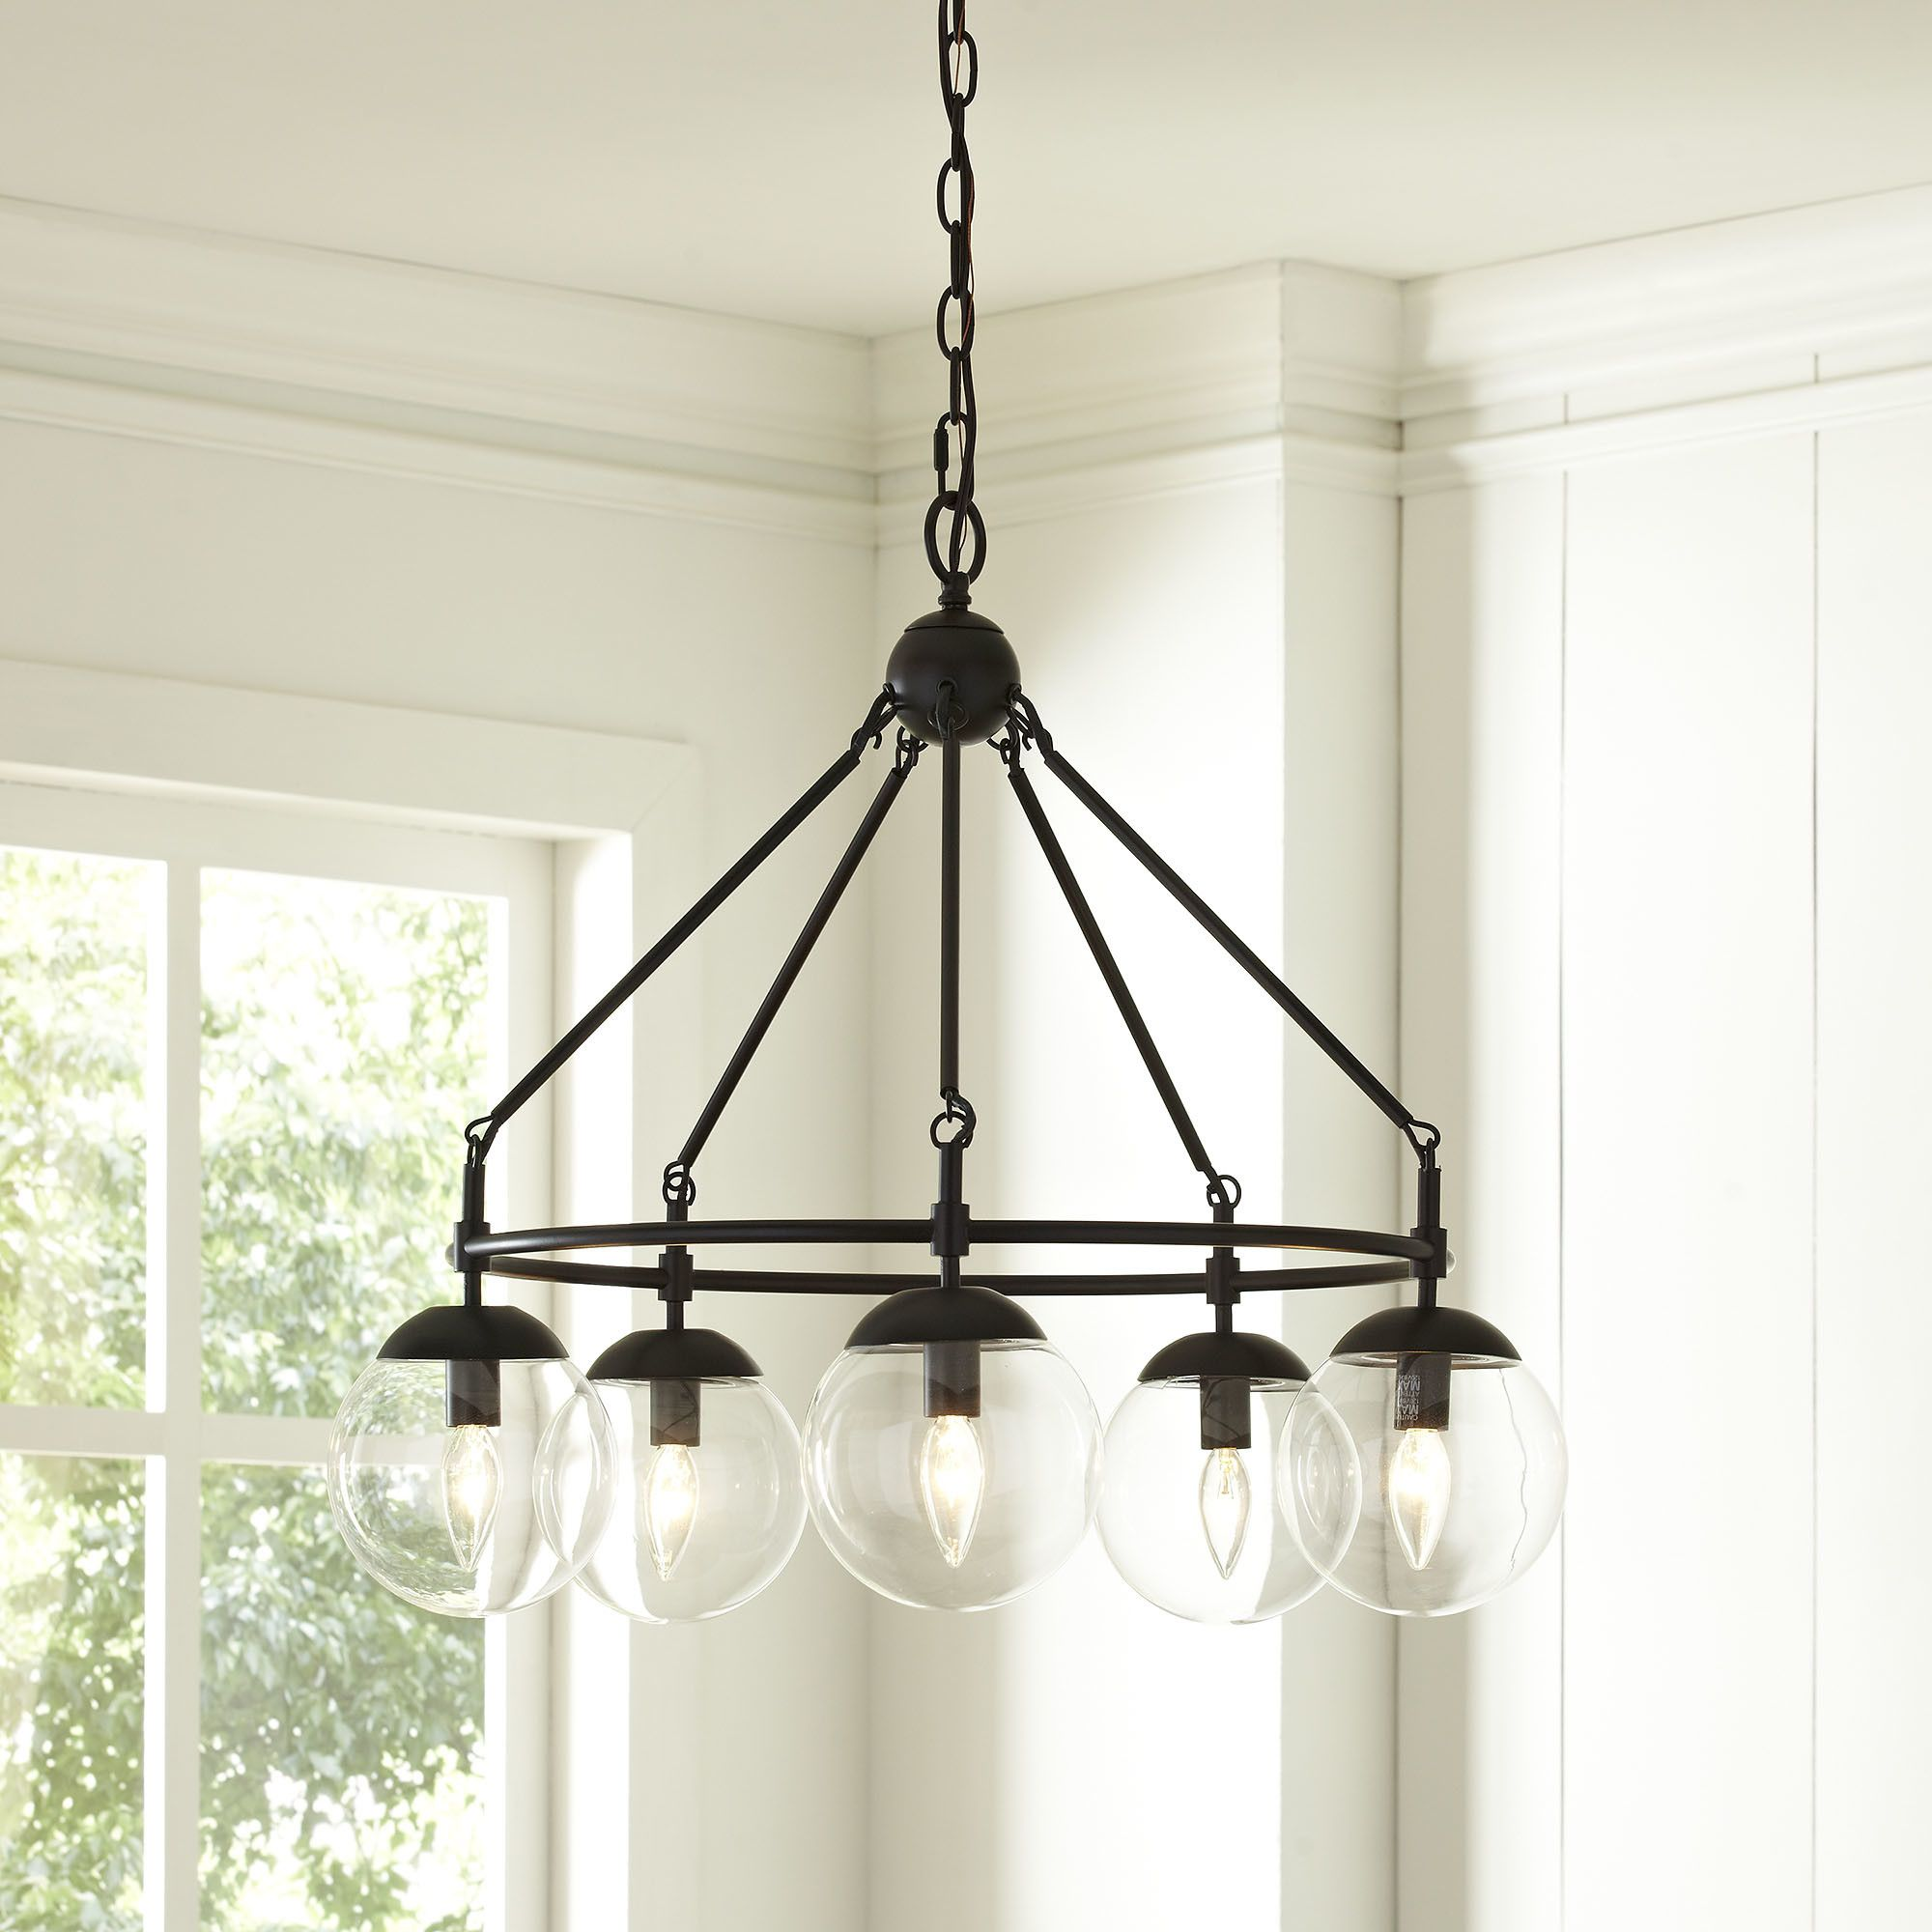 of chandeliers best vintage within tier brass lighting chandelier old fashioned patinated style georgian